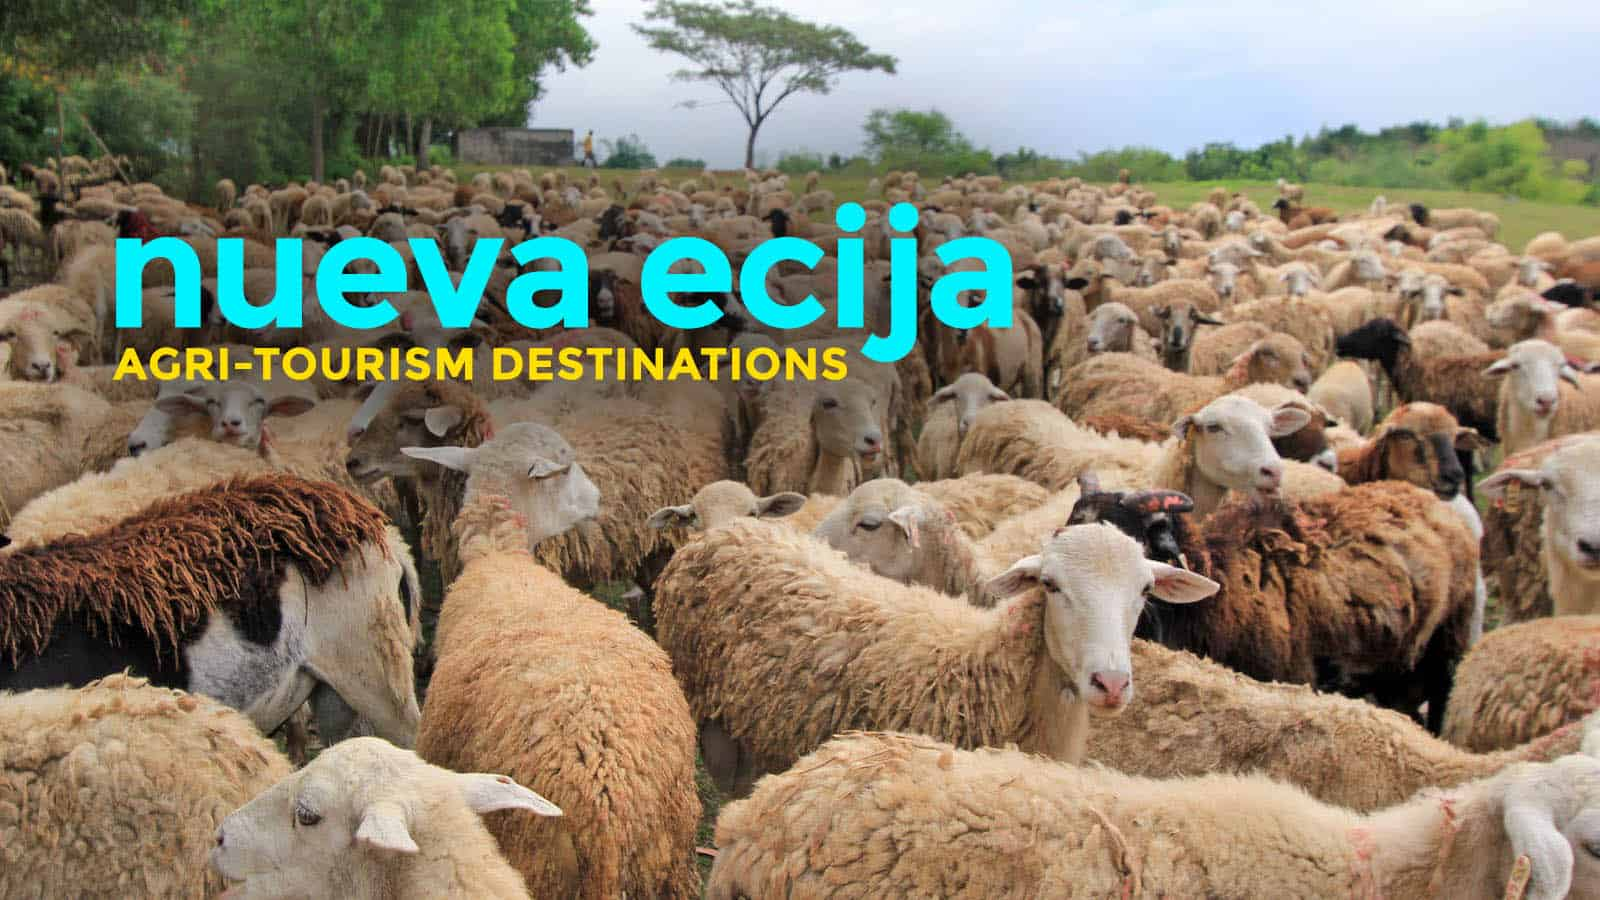 Tourism Destinations 8 Agri Tourism Destinations In Nueva Ecija The Poor Traveler